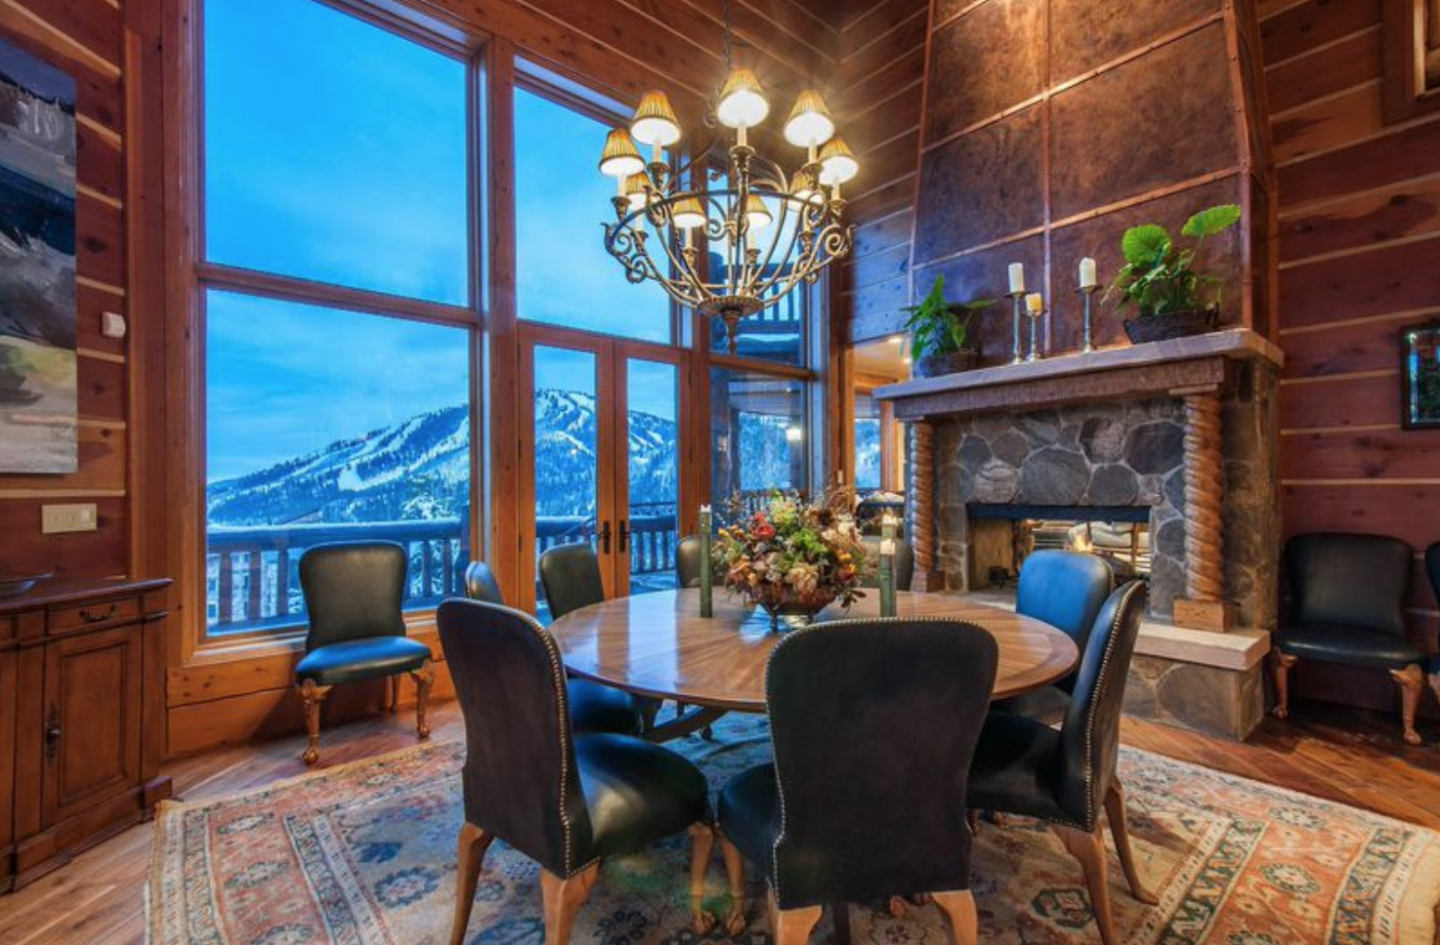 Dining area with great view